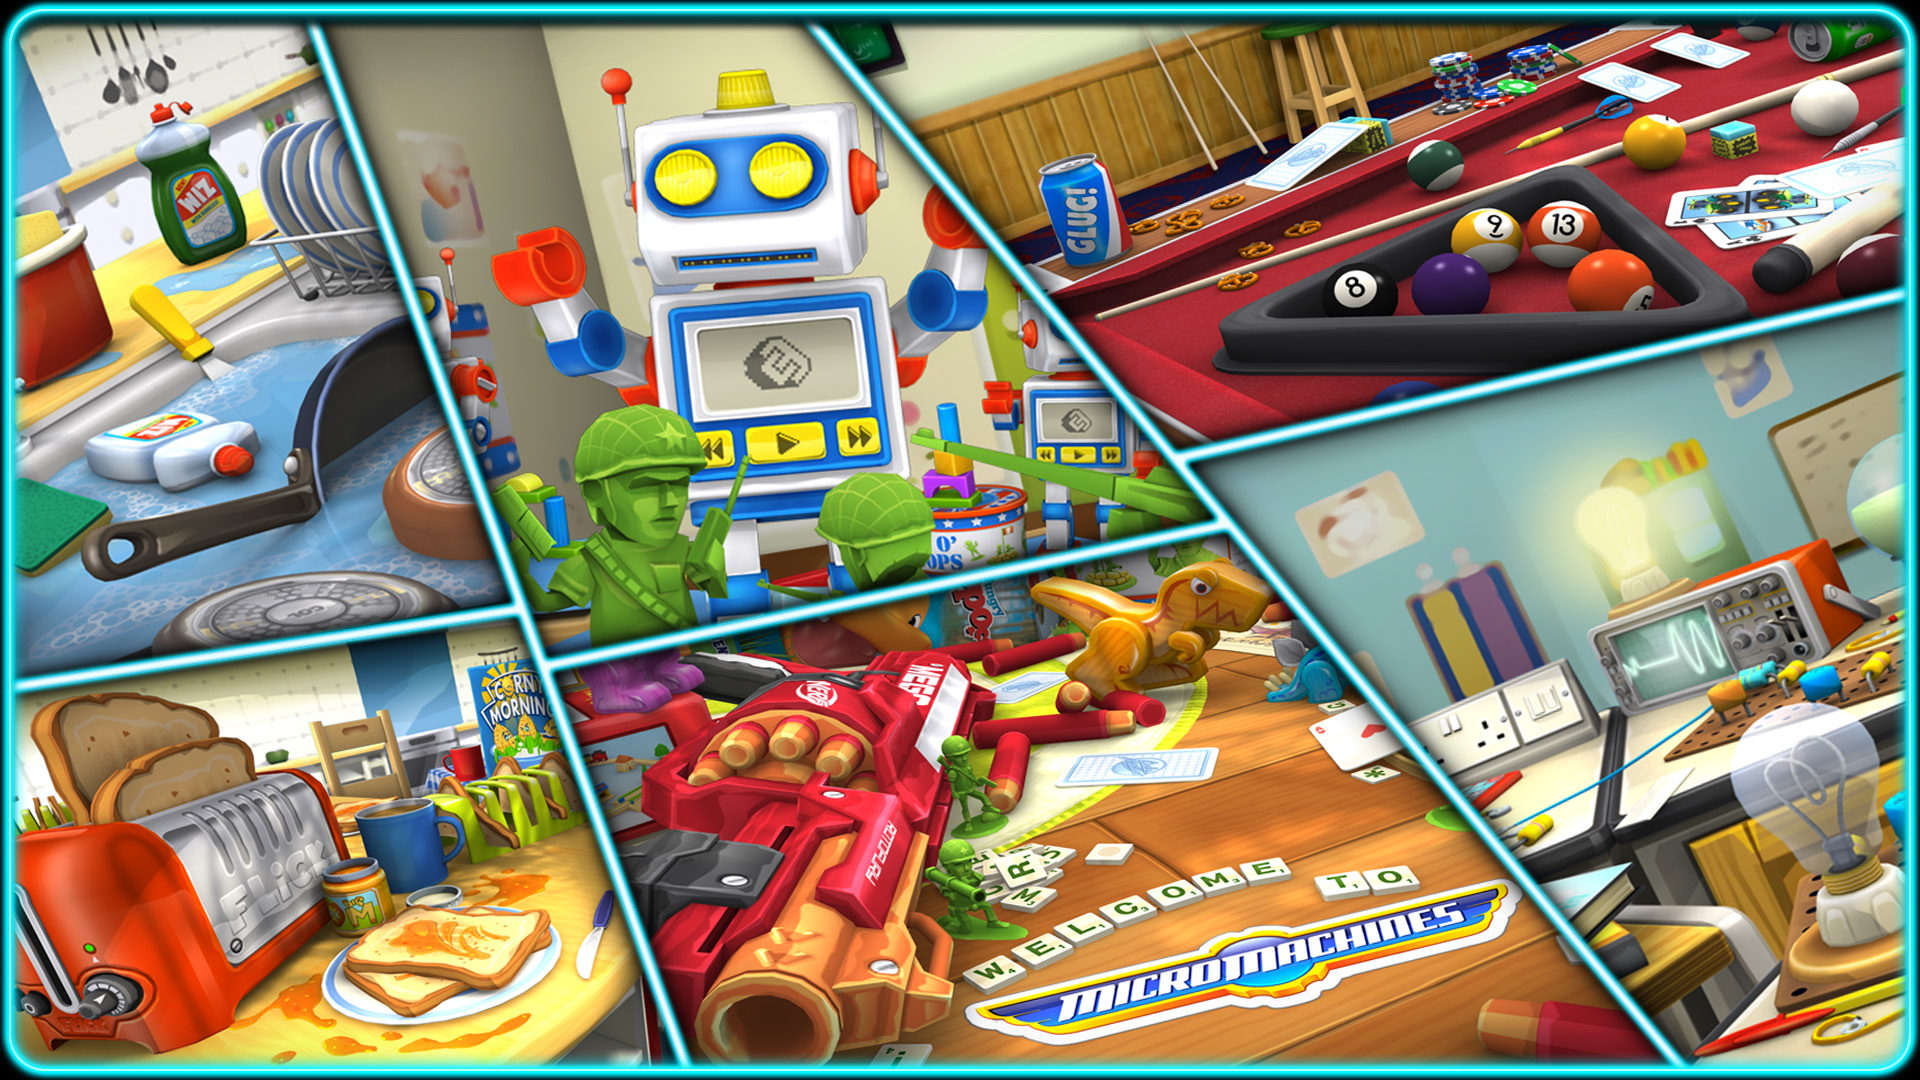 Micro Machines review - Does the iOS version hold up to the original?